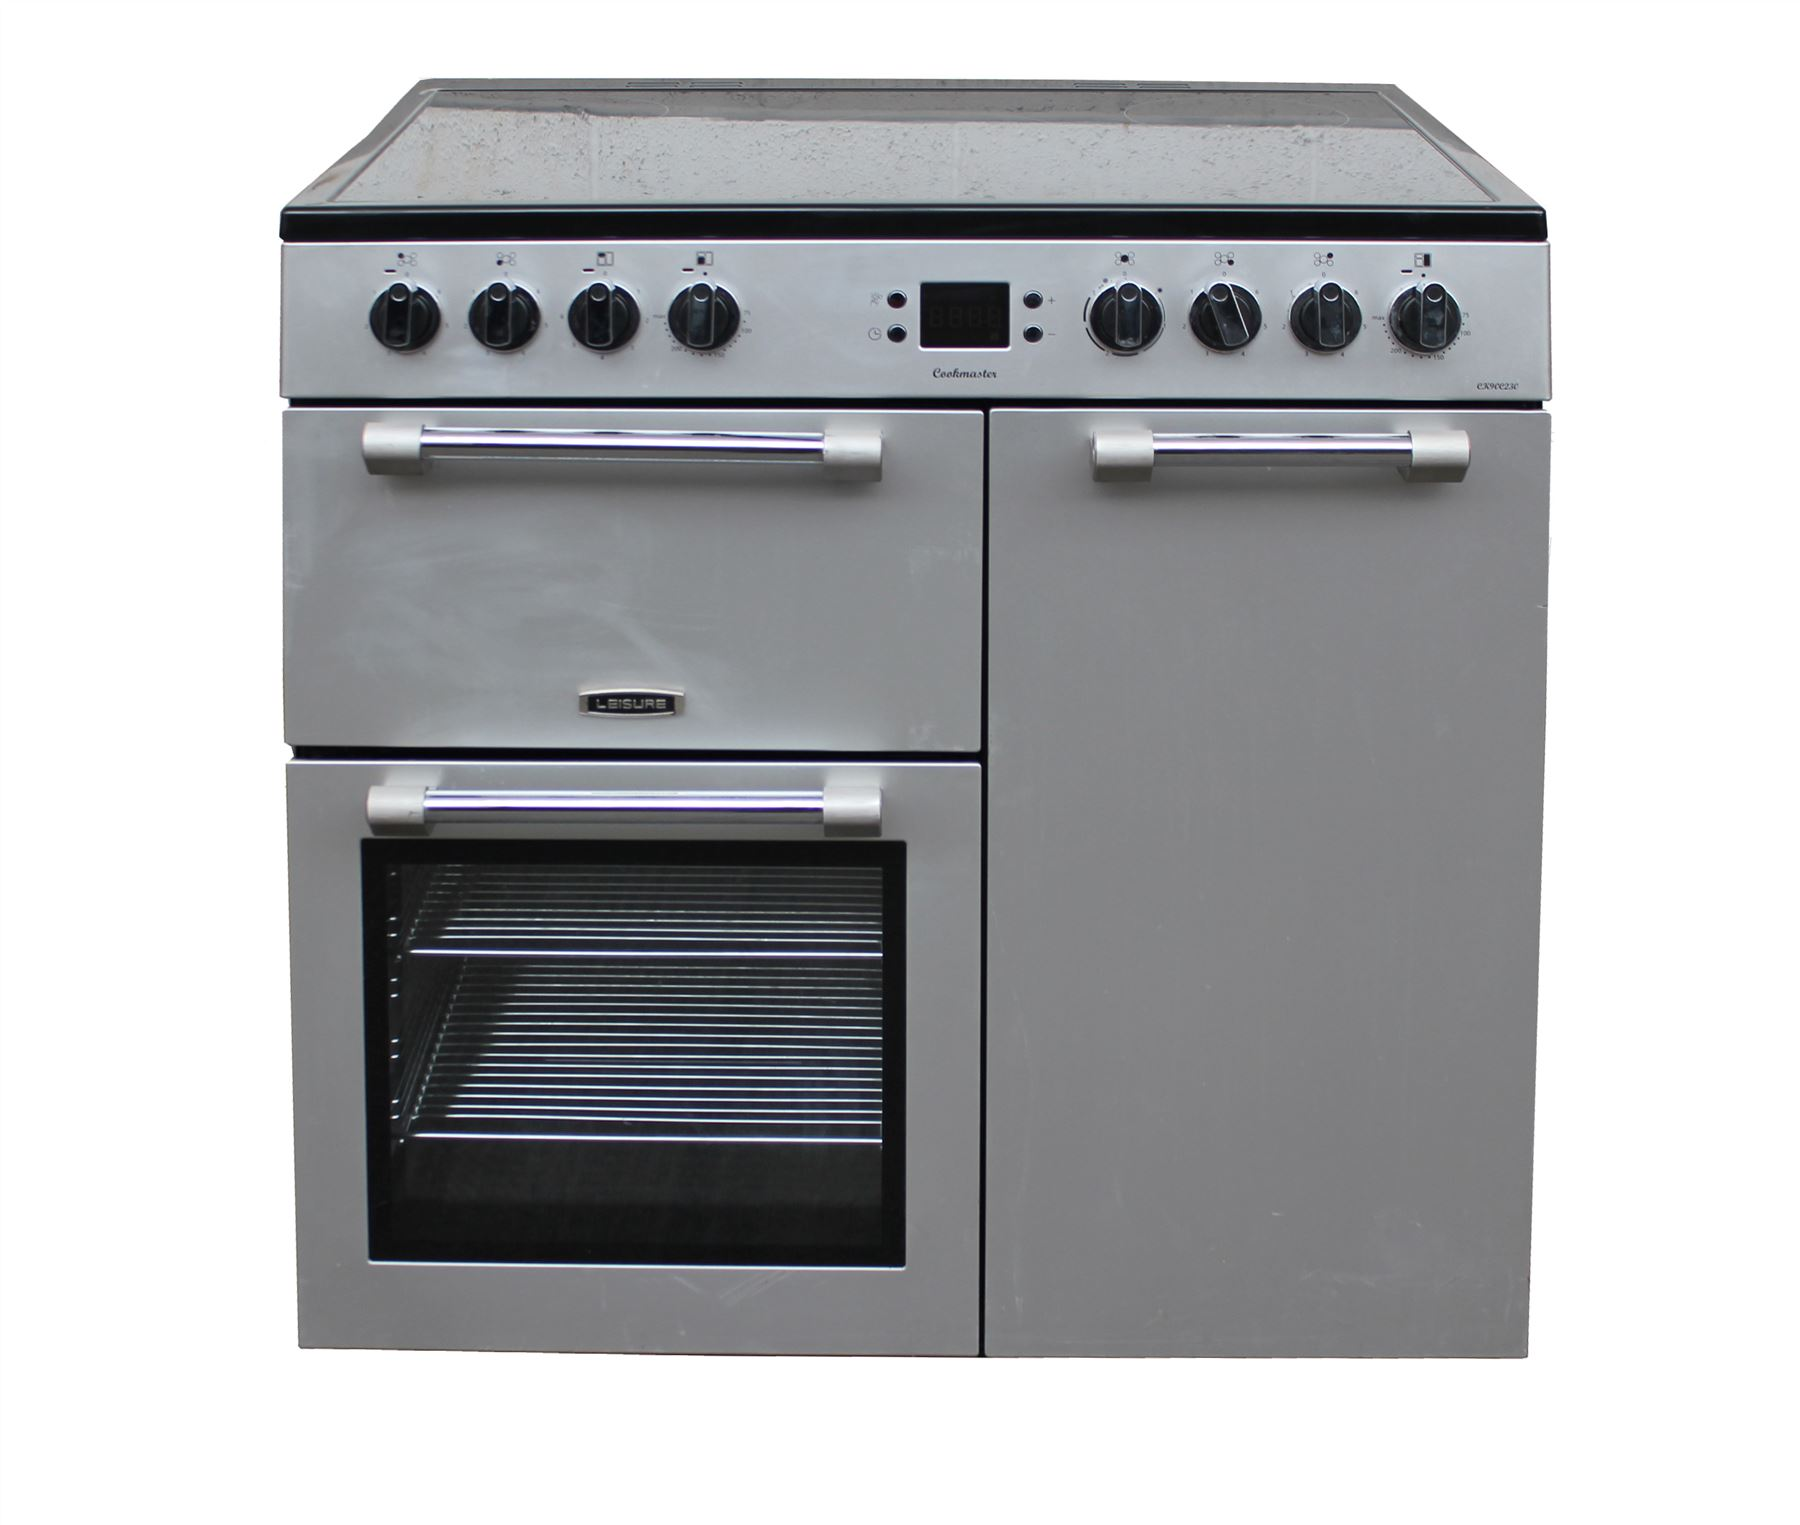 Leisure Cookmaster Ck90c230s Electric Range Cooker 90cm